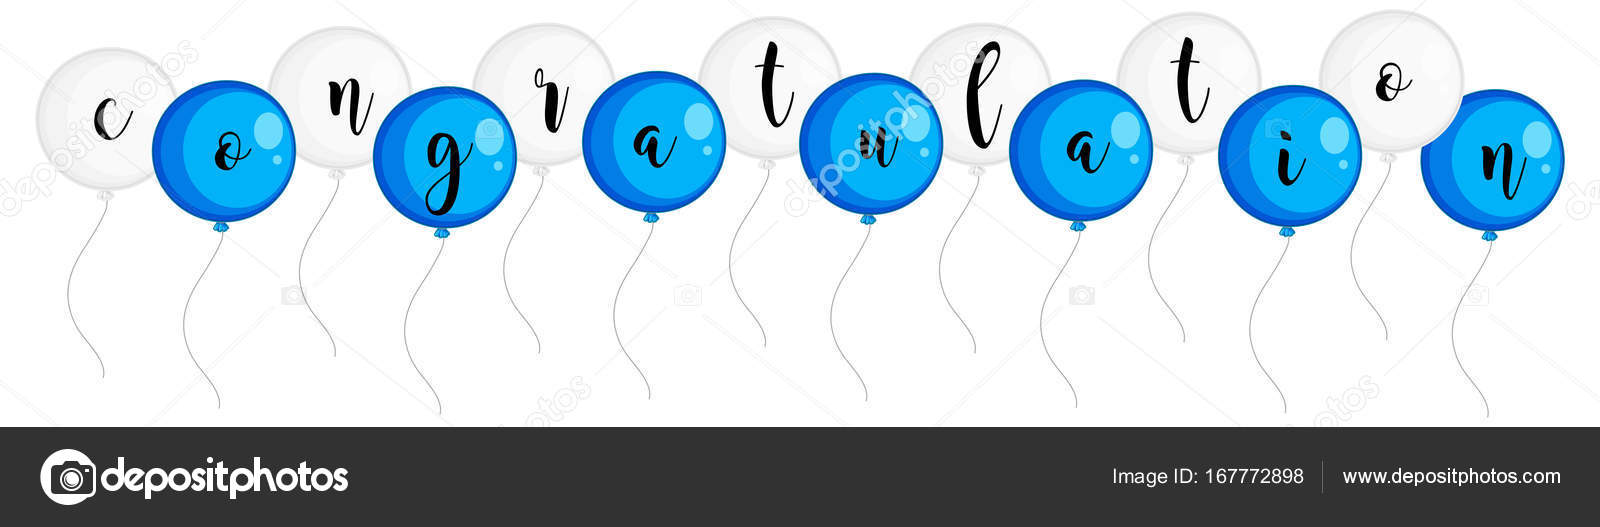 word congratulation on blue and white balloons stock vector